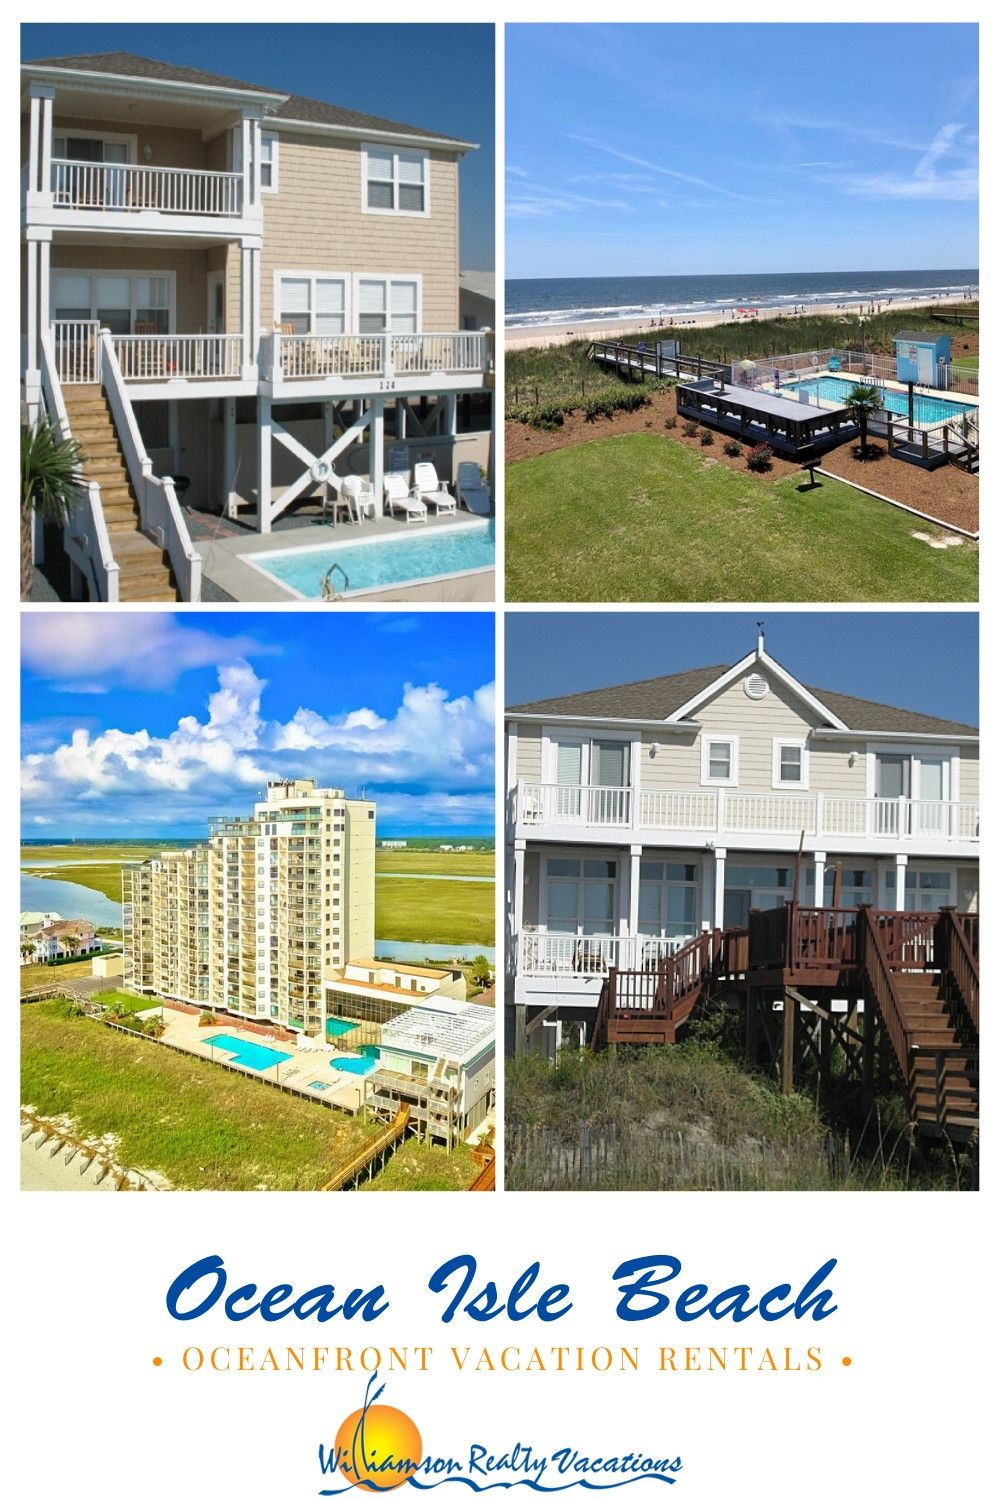 Beach Dreams Come True When You Rent An Oceanfront Vacation Rental From Williamson Realty C Oceanfront Vacation Rentals Beachfront Vacation Rentals Oceanfront